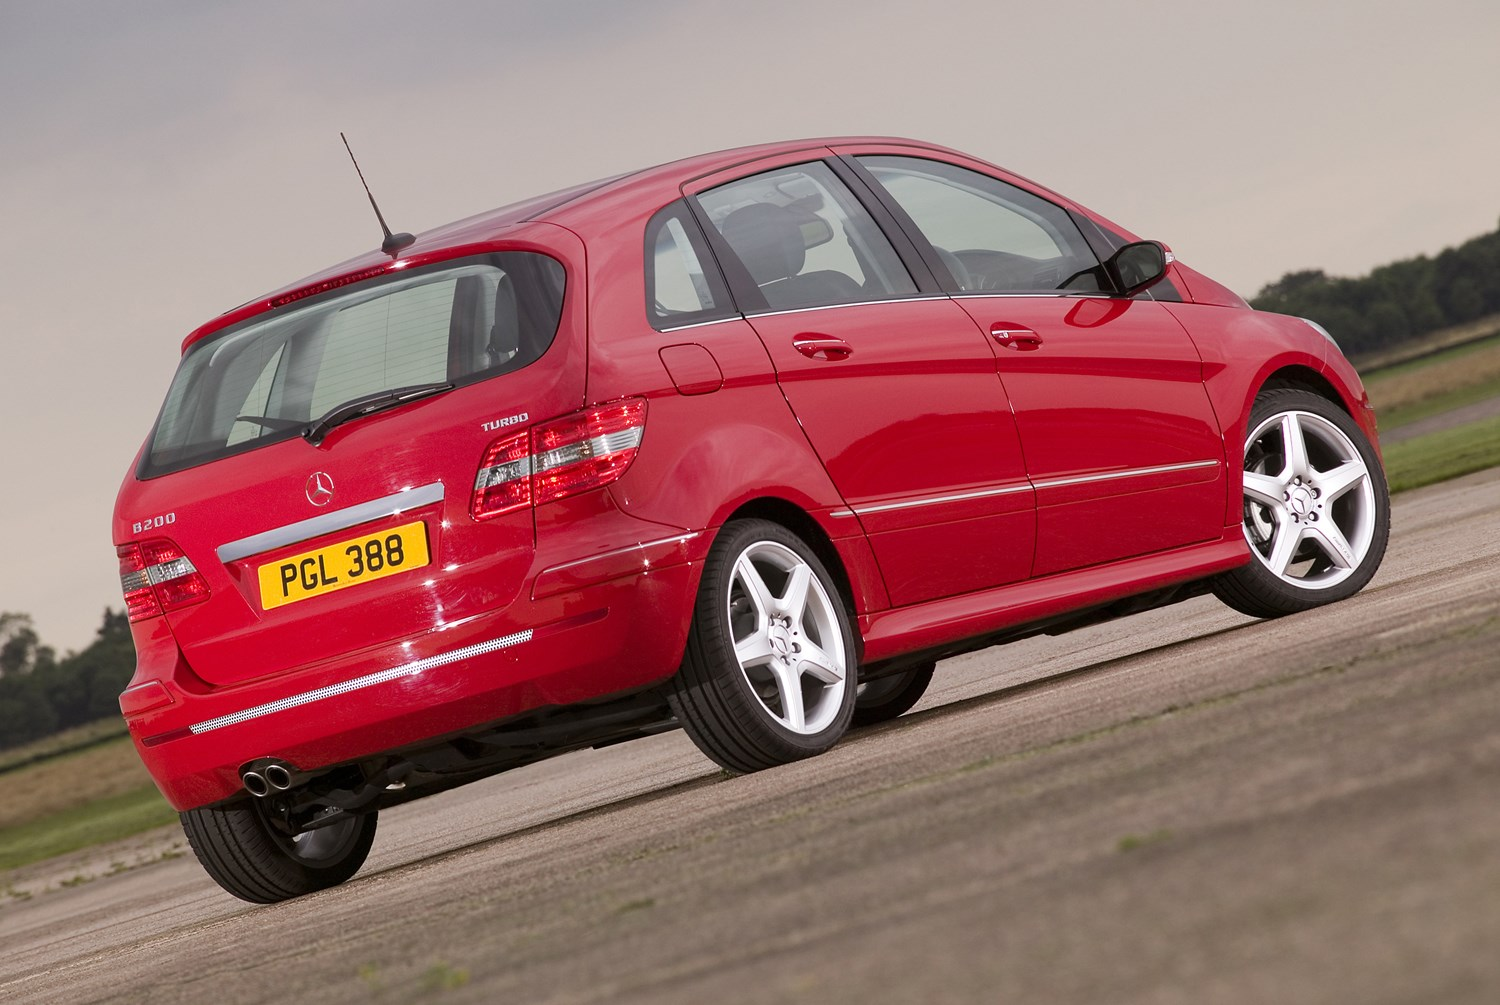 Used Mercedes-Benz B-Class Hatchback (2005 - 2011) Practicality